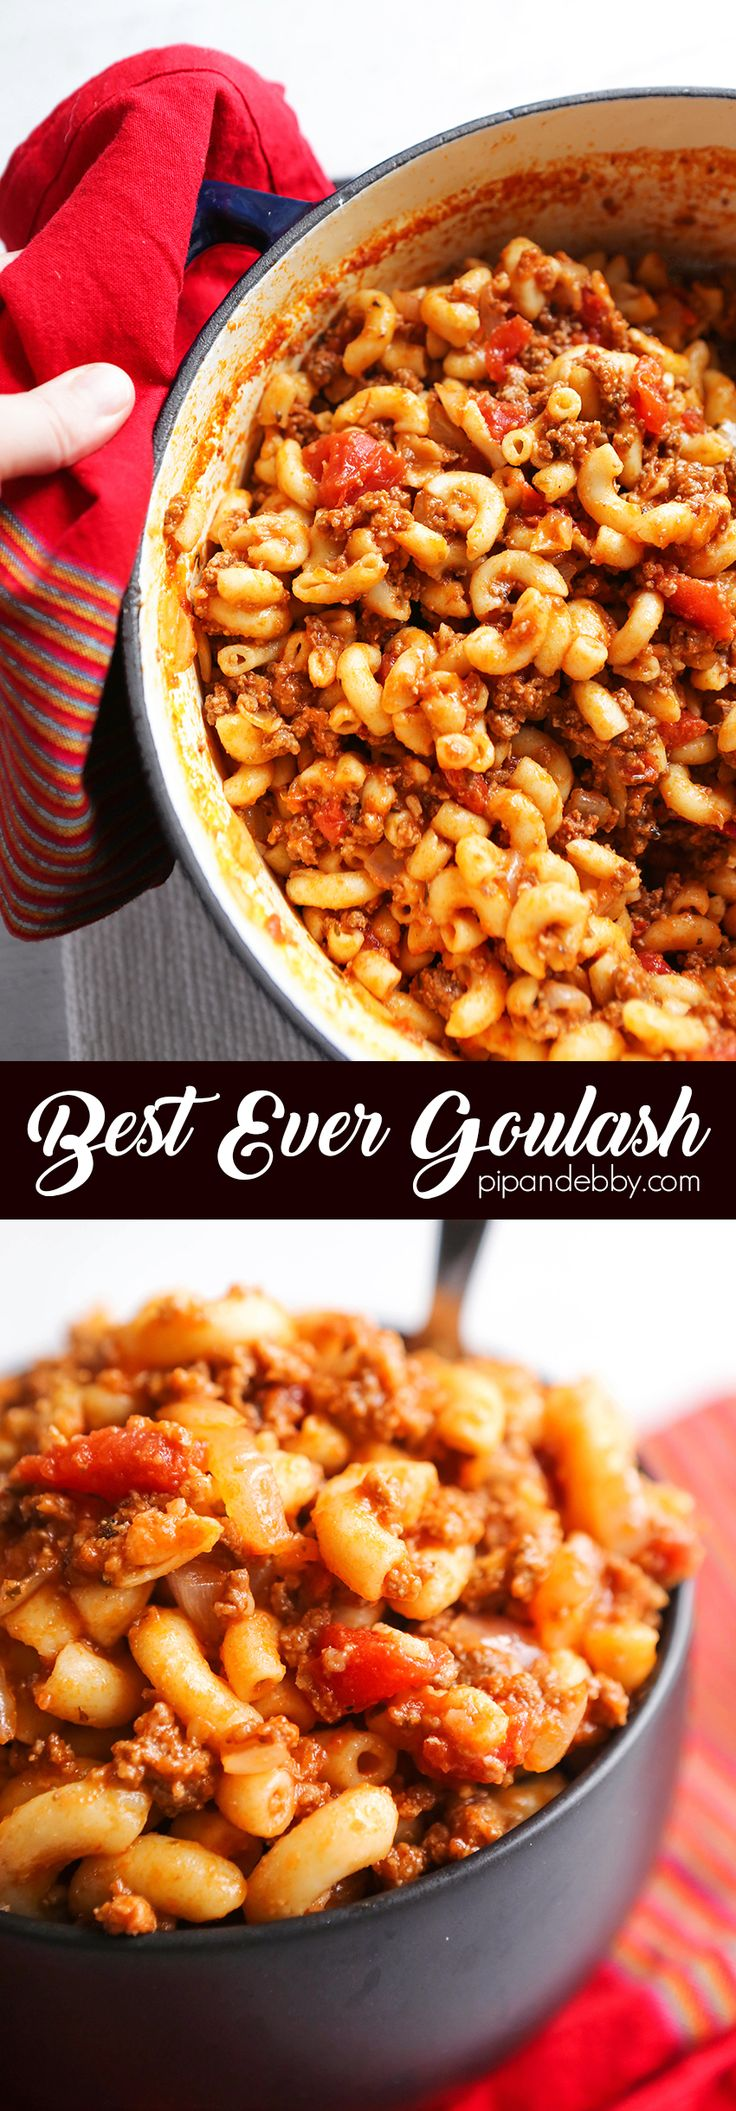 Best EVER Goulash | This Goulash is the most comforting of all comfort food. It is warm, delicious, filling, irresistible and easy to prepare. It is the perfect weeknight family meal!